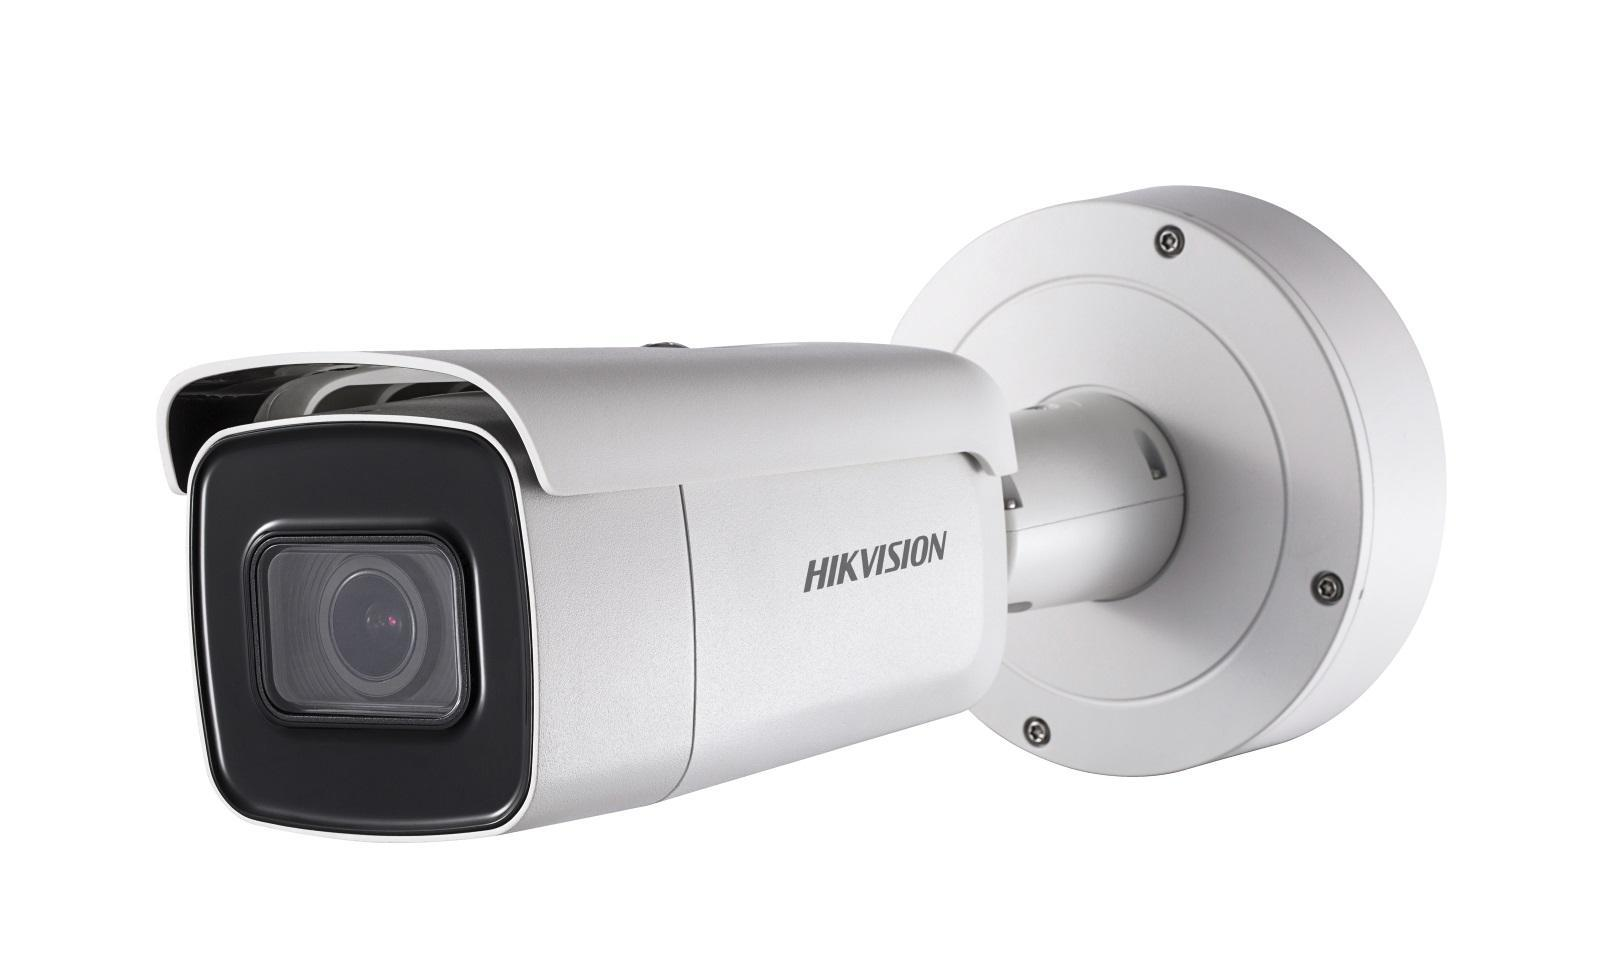 Hikvision IP Camera DS-2CD2645FWD-IZS F2.8-12 Bullet, 4 MP, 2.8-12mm/F1.4, Power - Tinklo kameros, monitoringas ir priedai